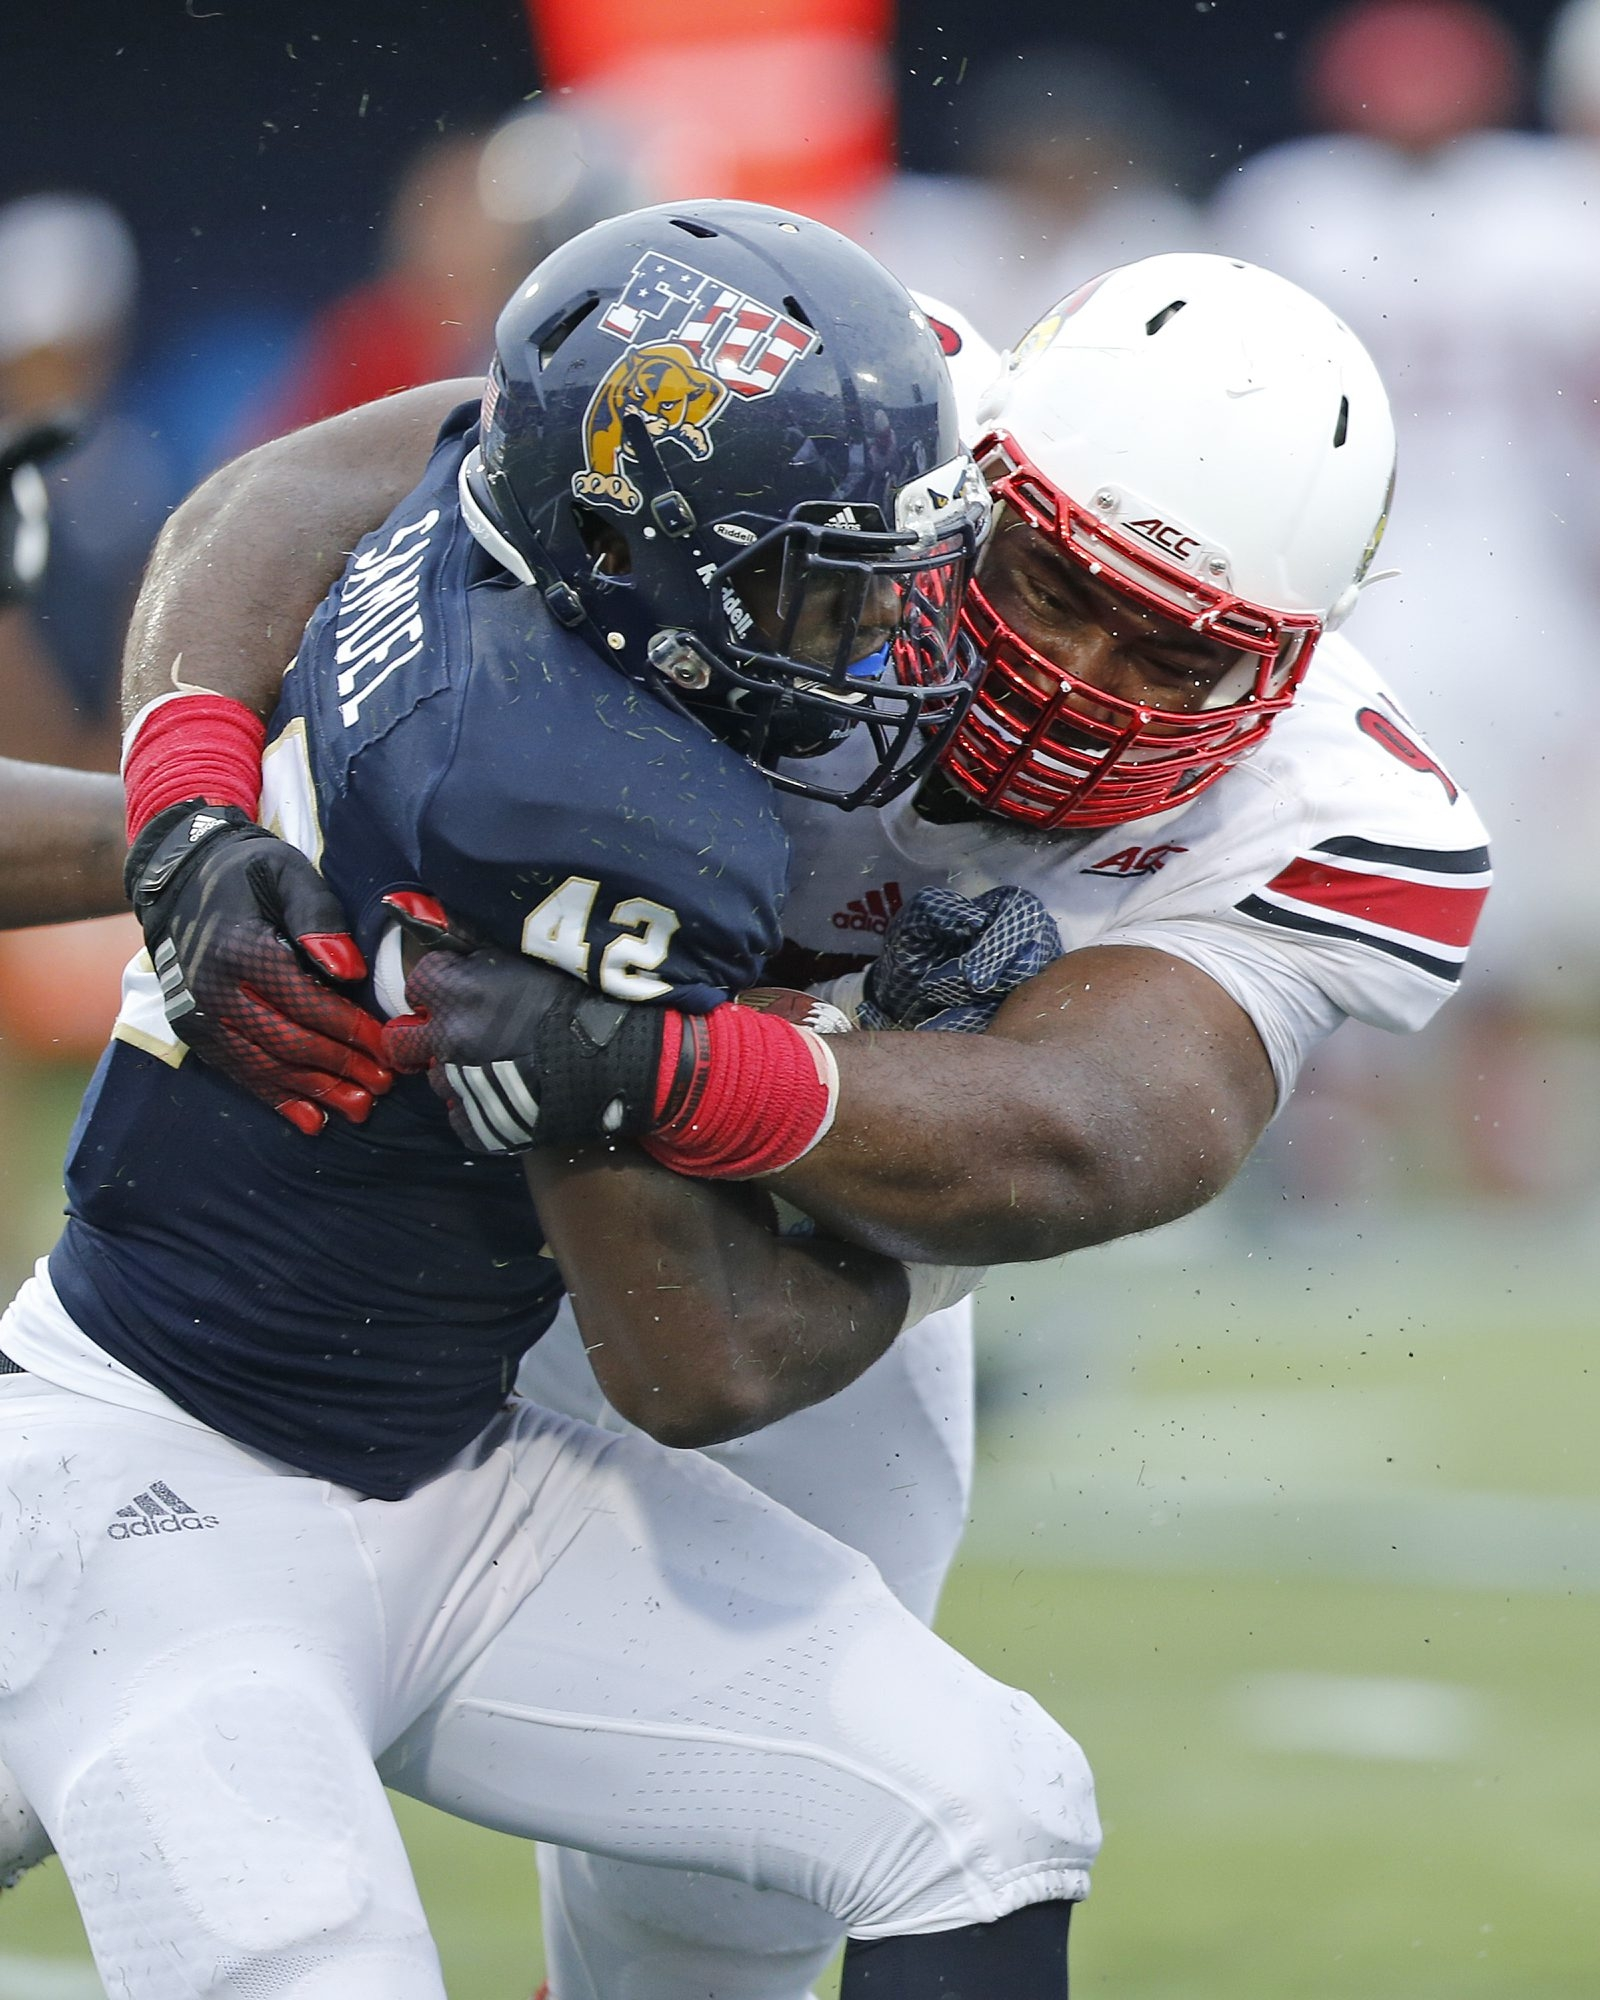 Sheldon Rankins (98) of the Louisville Cardinals tackles Anthon Samuel (42) of the Florida Panthers on Sept. 20, 2014.